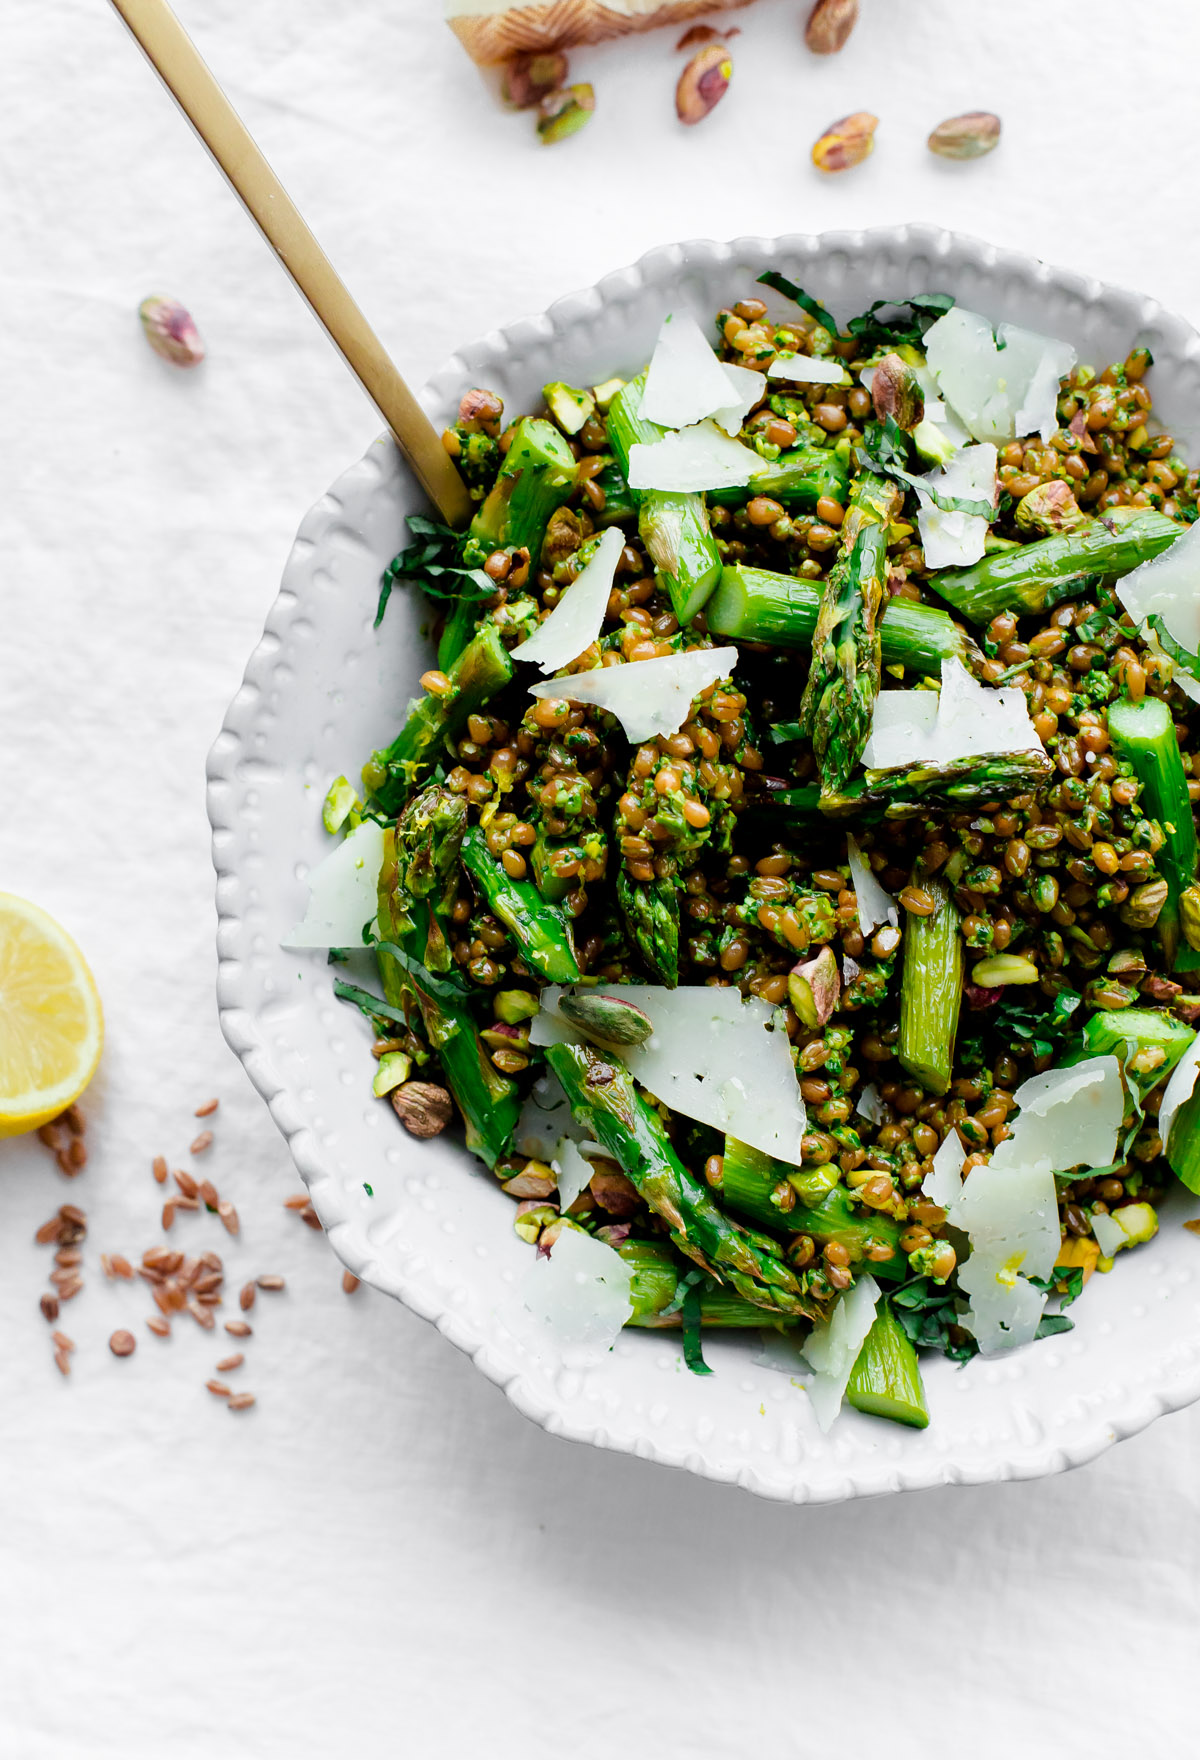 arugula-pistachio-pesto-wheat-berry-salad-with-roasted-asparagus-1-21 ...